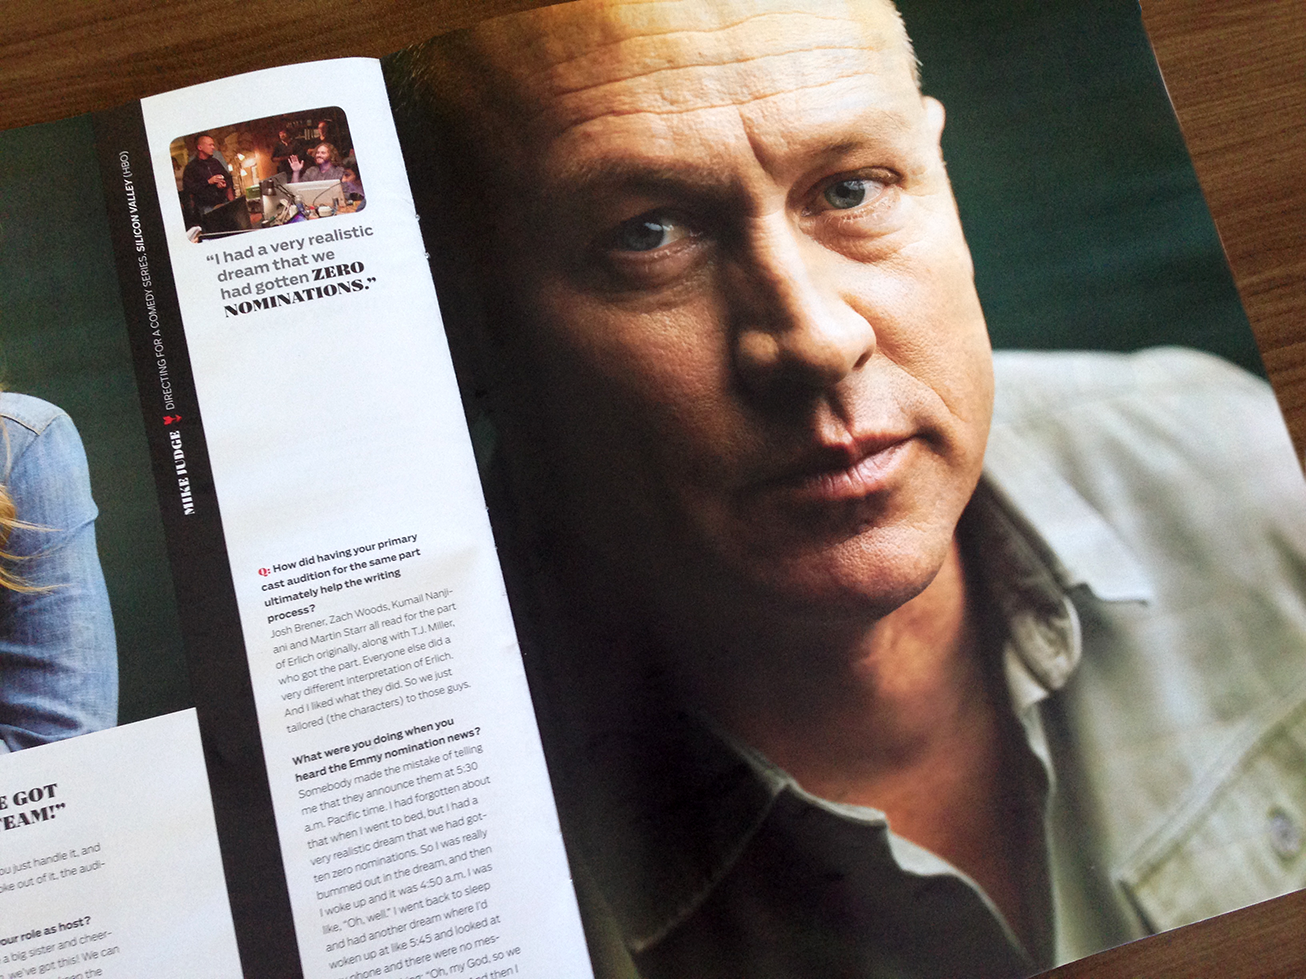 Mike Judge (Silicon Valley) photographed by J.R. Mankoff